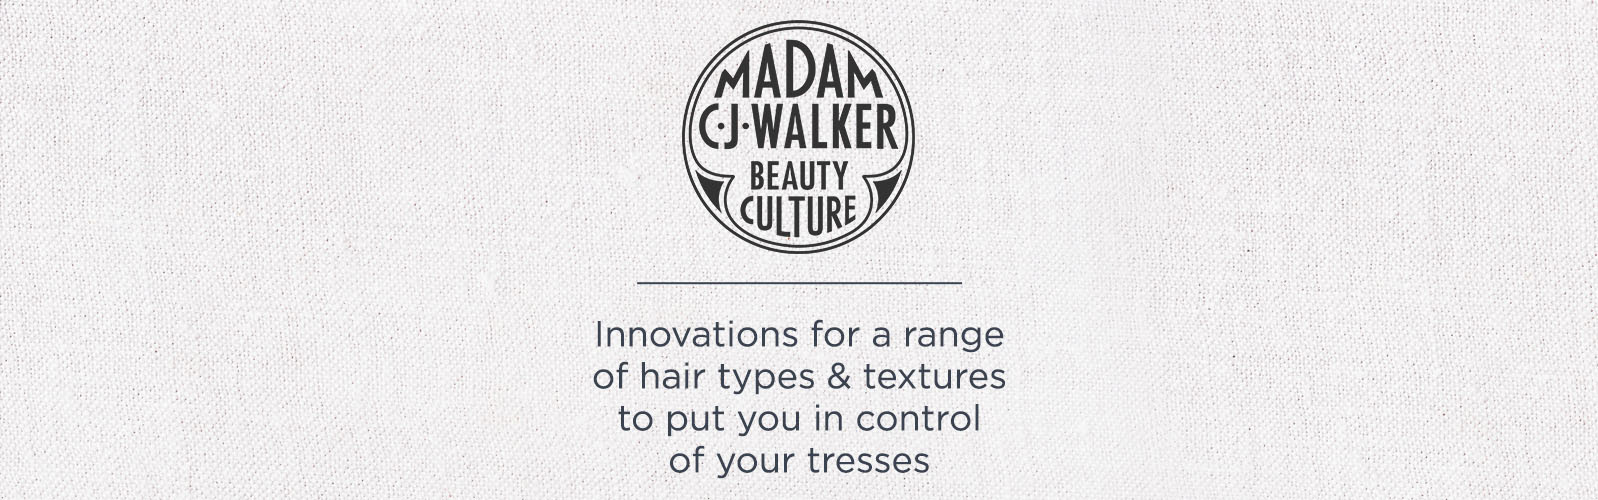 Madam C.J. Walker Beauty Culture,  Innovations for a range of hair types & textures to put you in control of your tresses